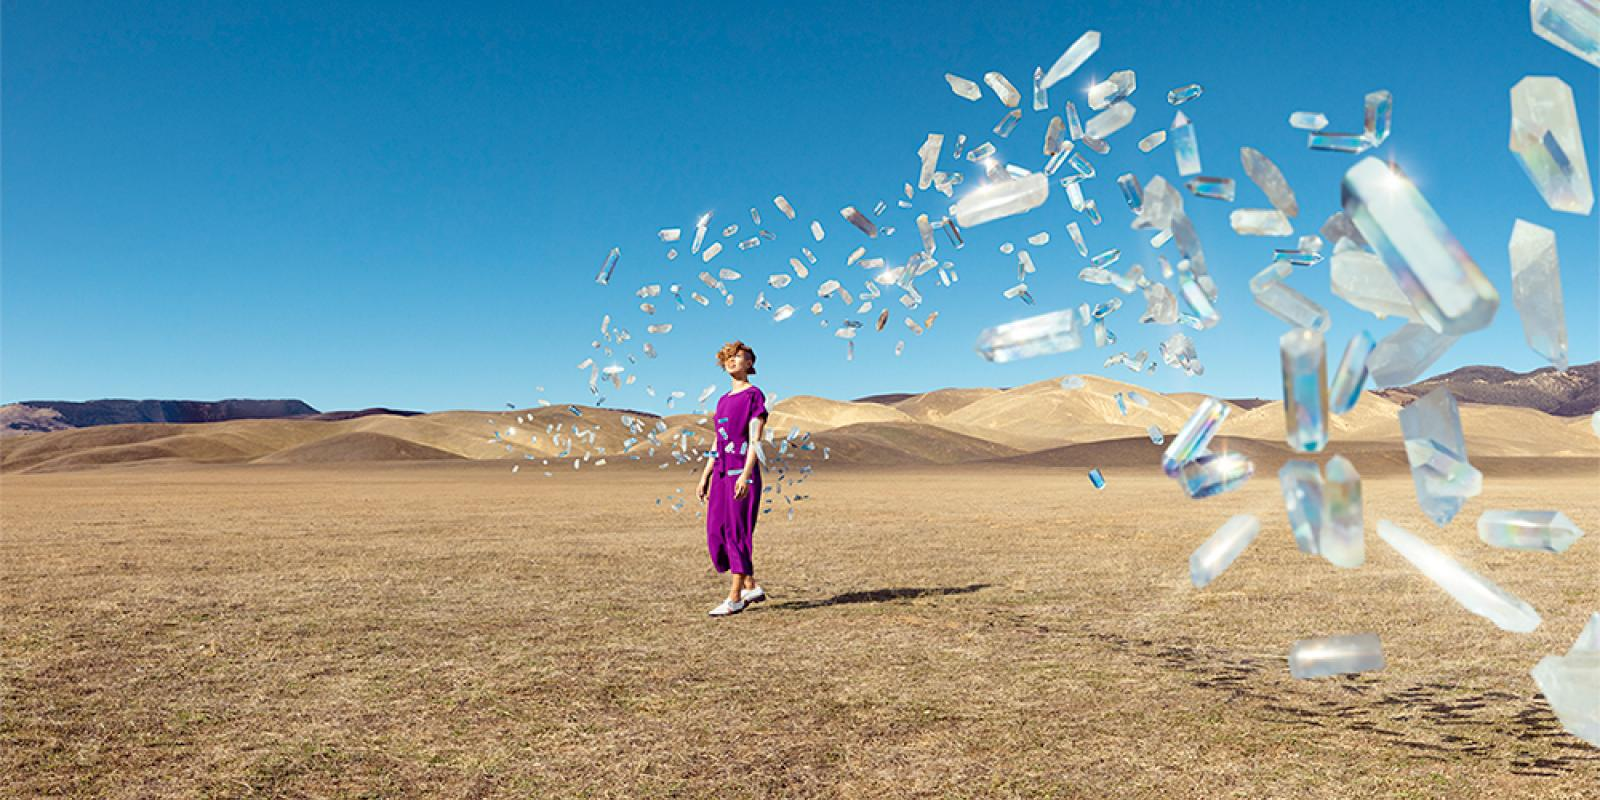 Image of a woman on a desert with crystals flying at her